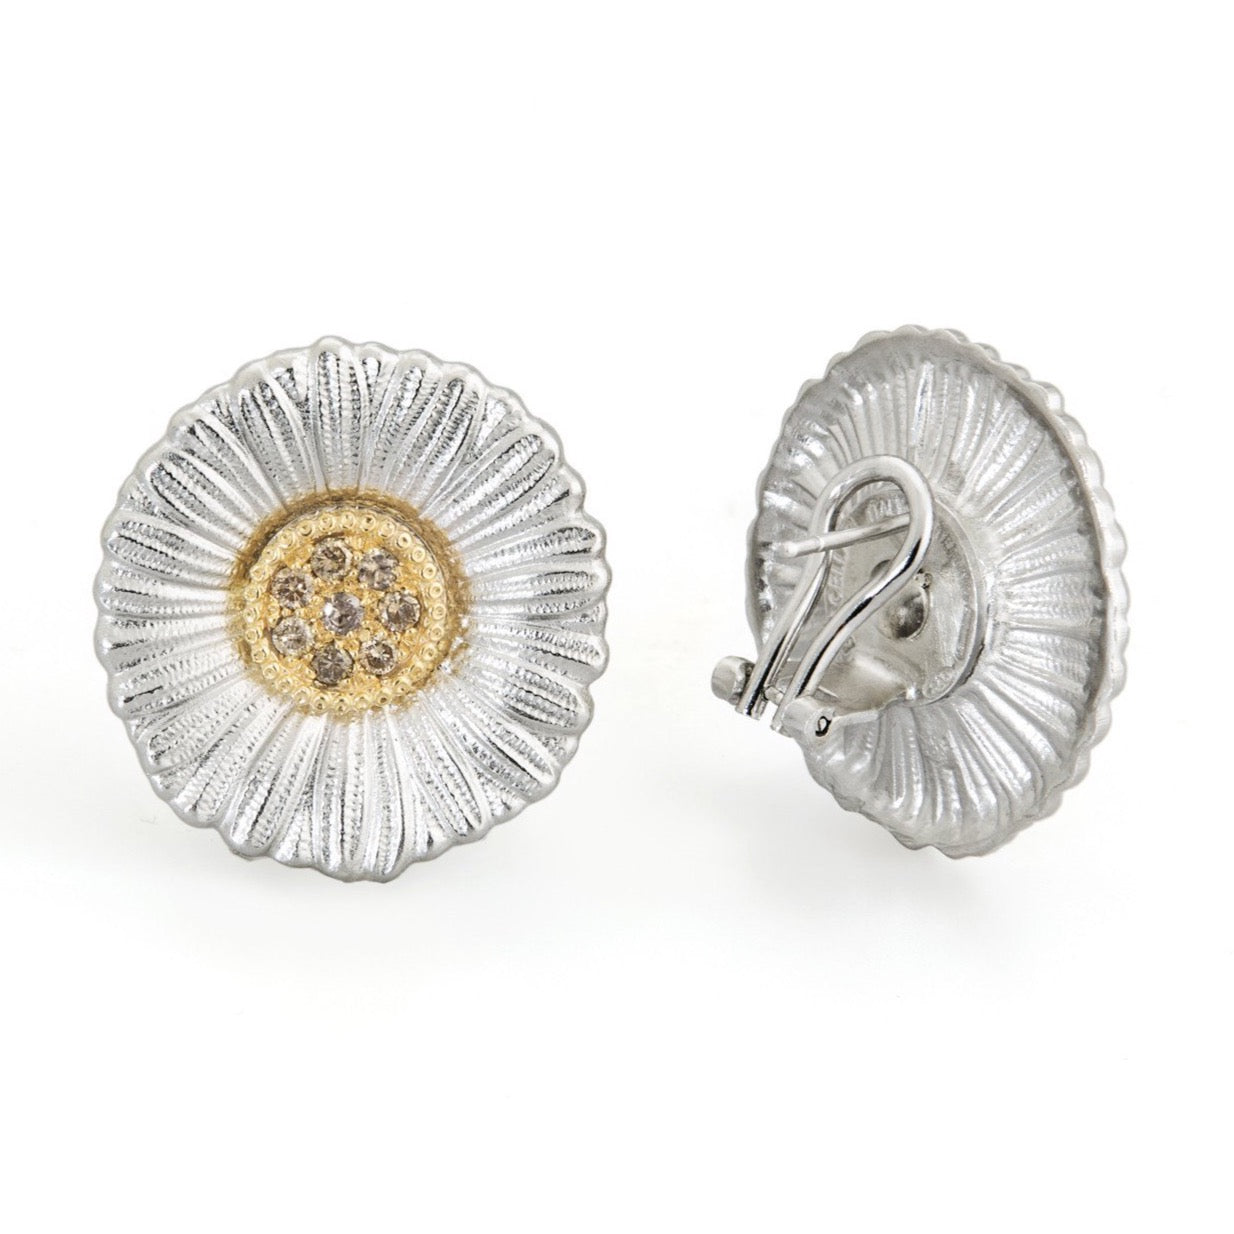 BUCCELLATI-BLOSSOMS-DAISY-BUTTON-EARRINGS-BROWN-DIAMONDS-STERLING-SILVER